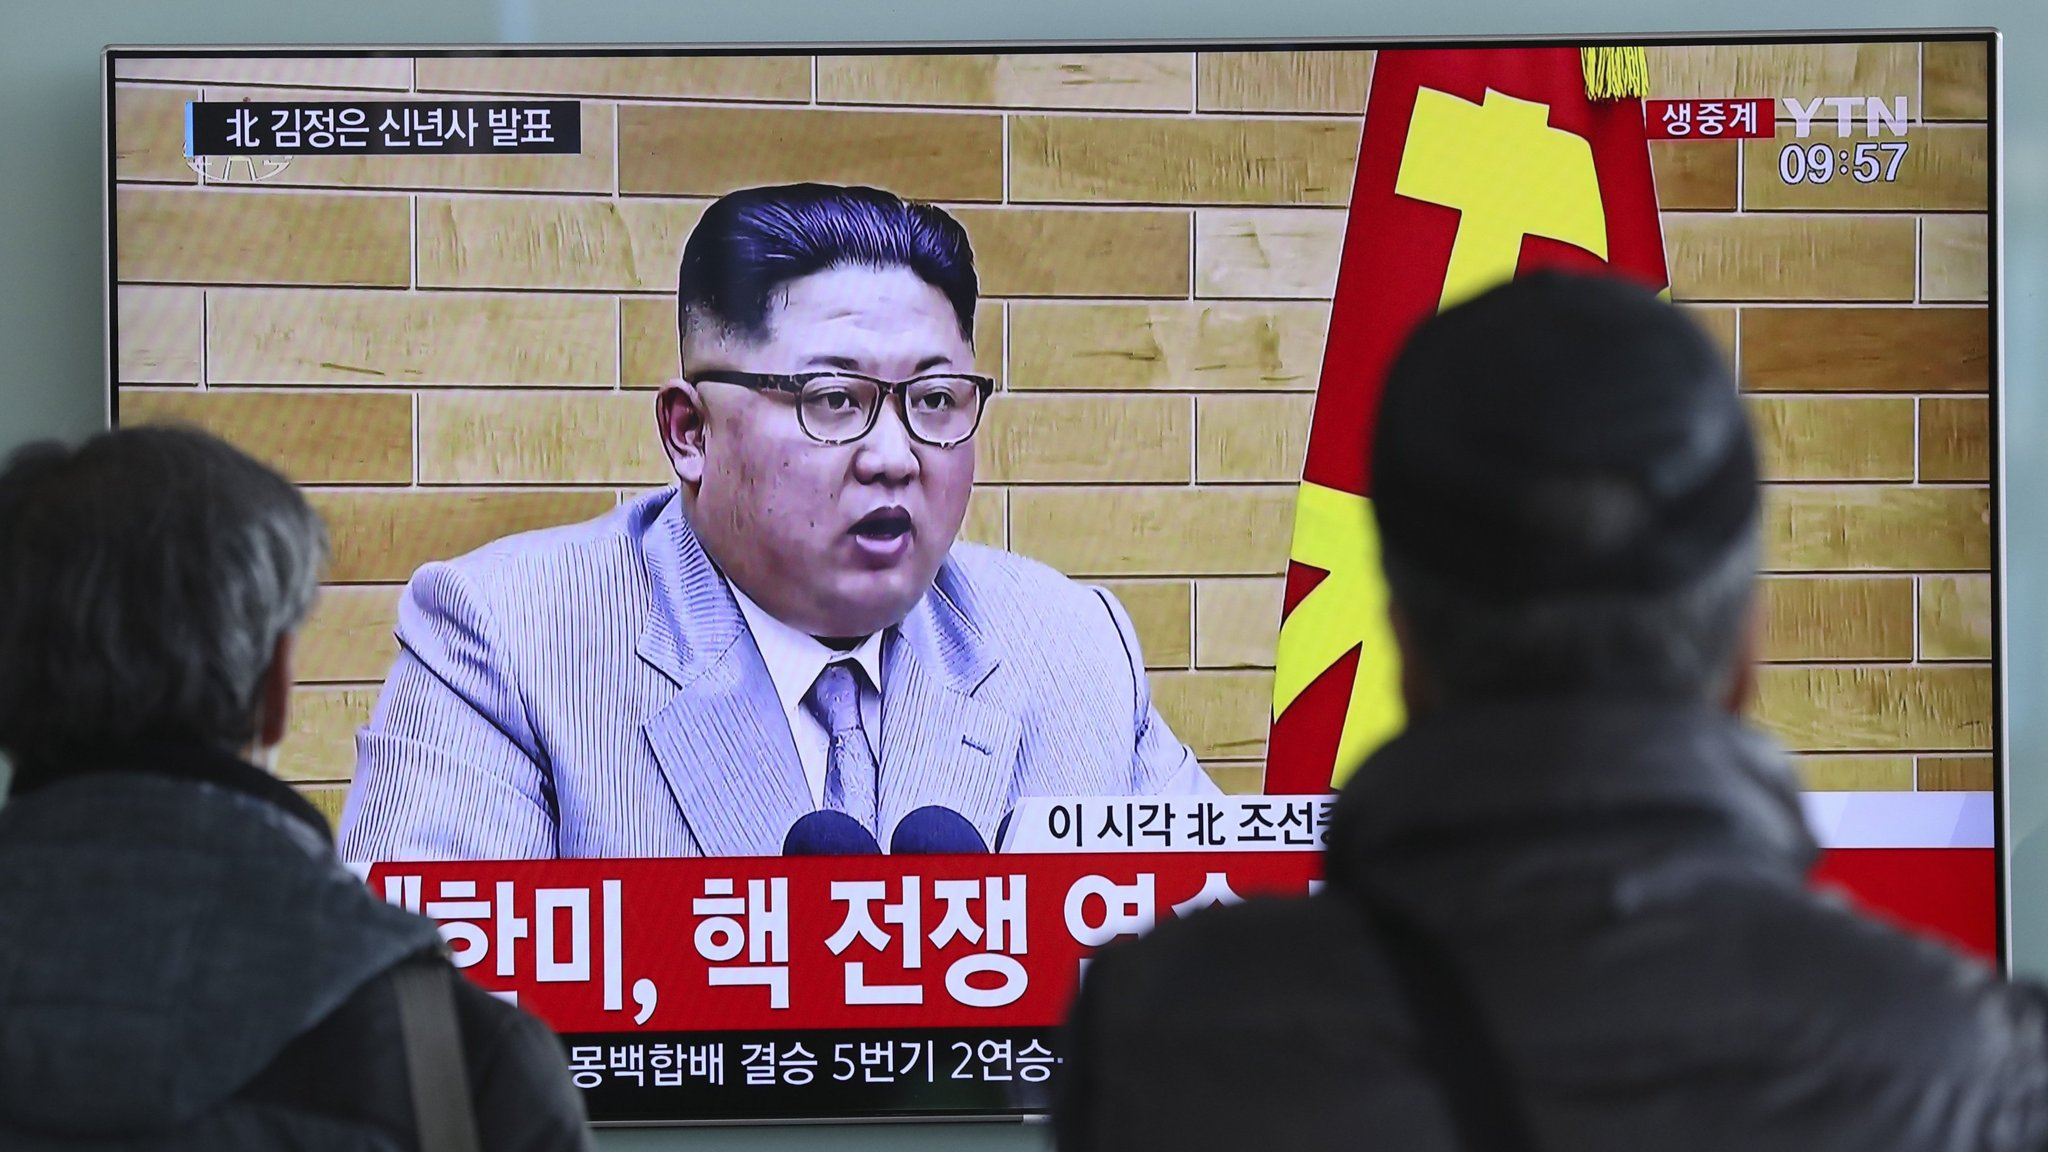 North Korea's Kim Jong-un offers hope of dialogue with Seoul